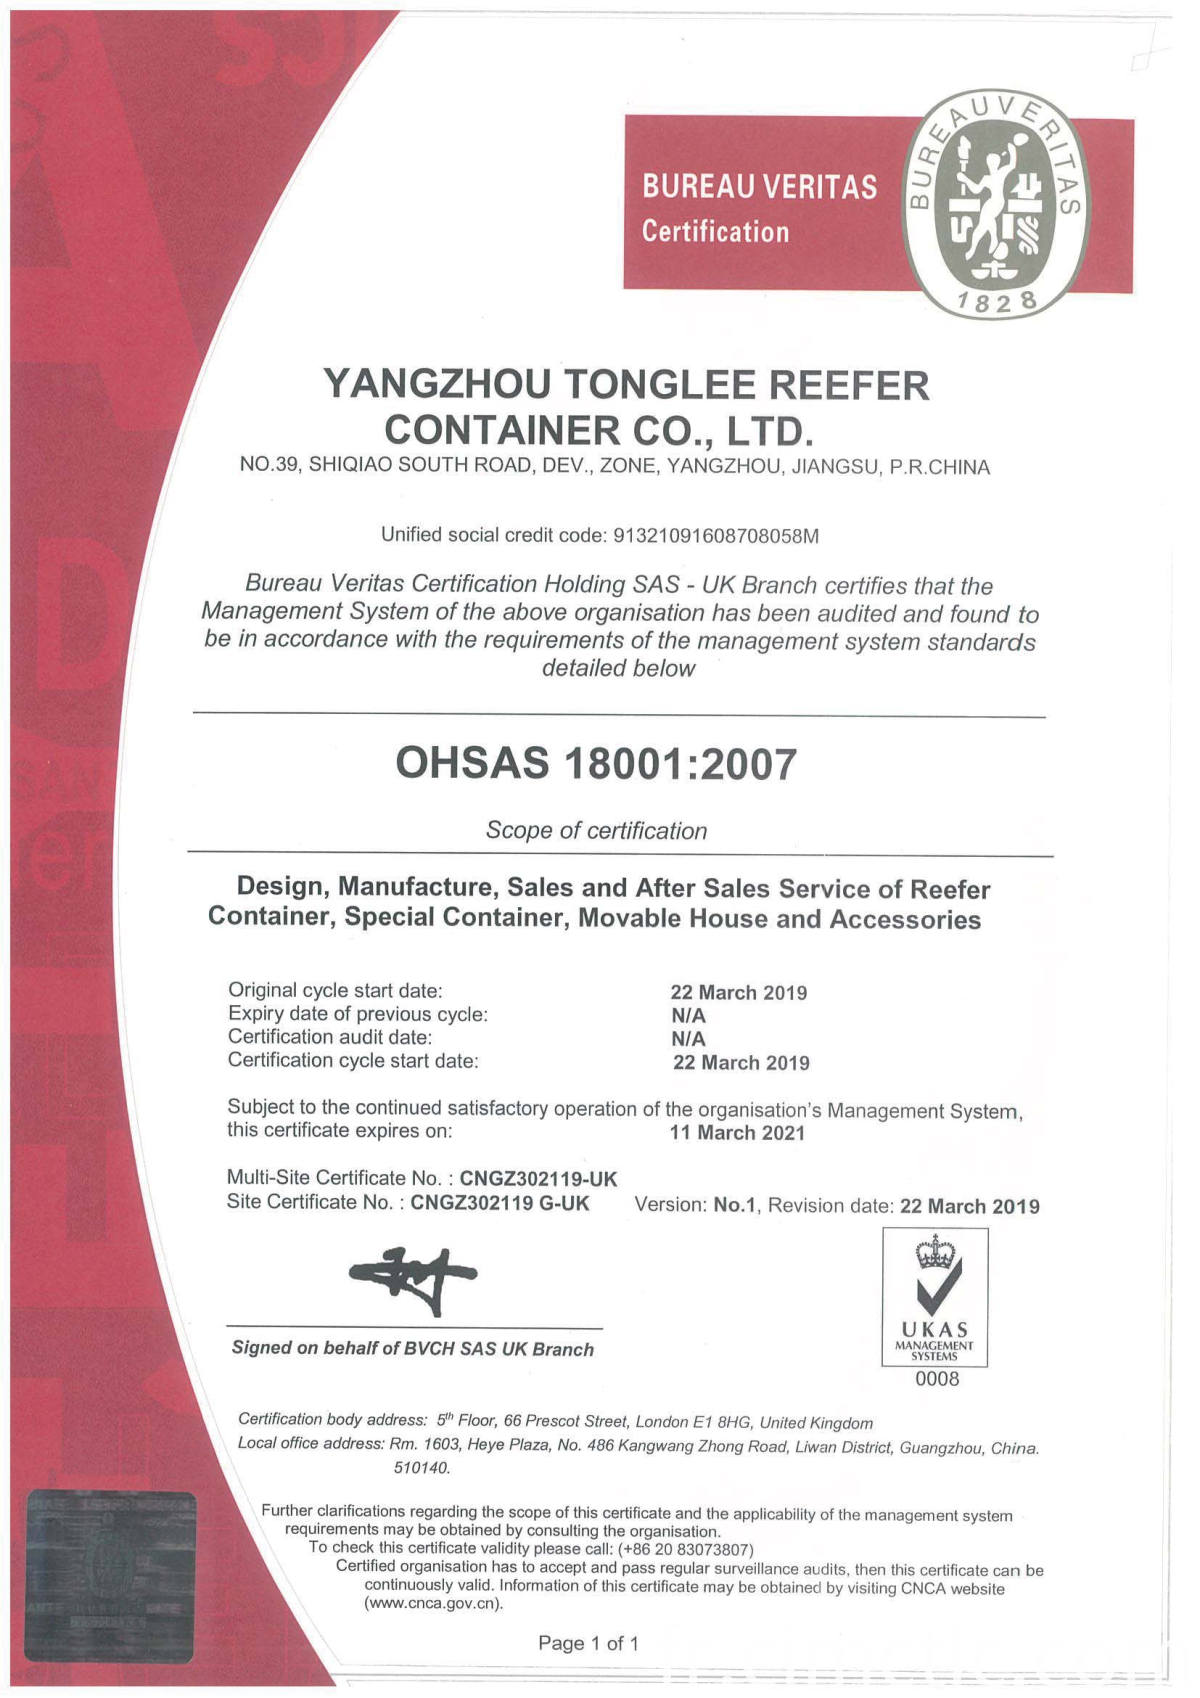 OSHAS 18001 certification